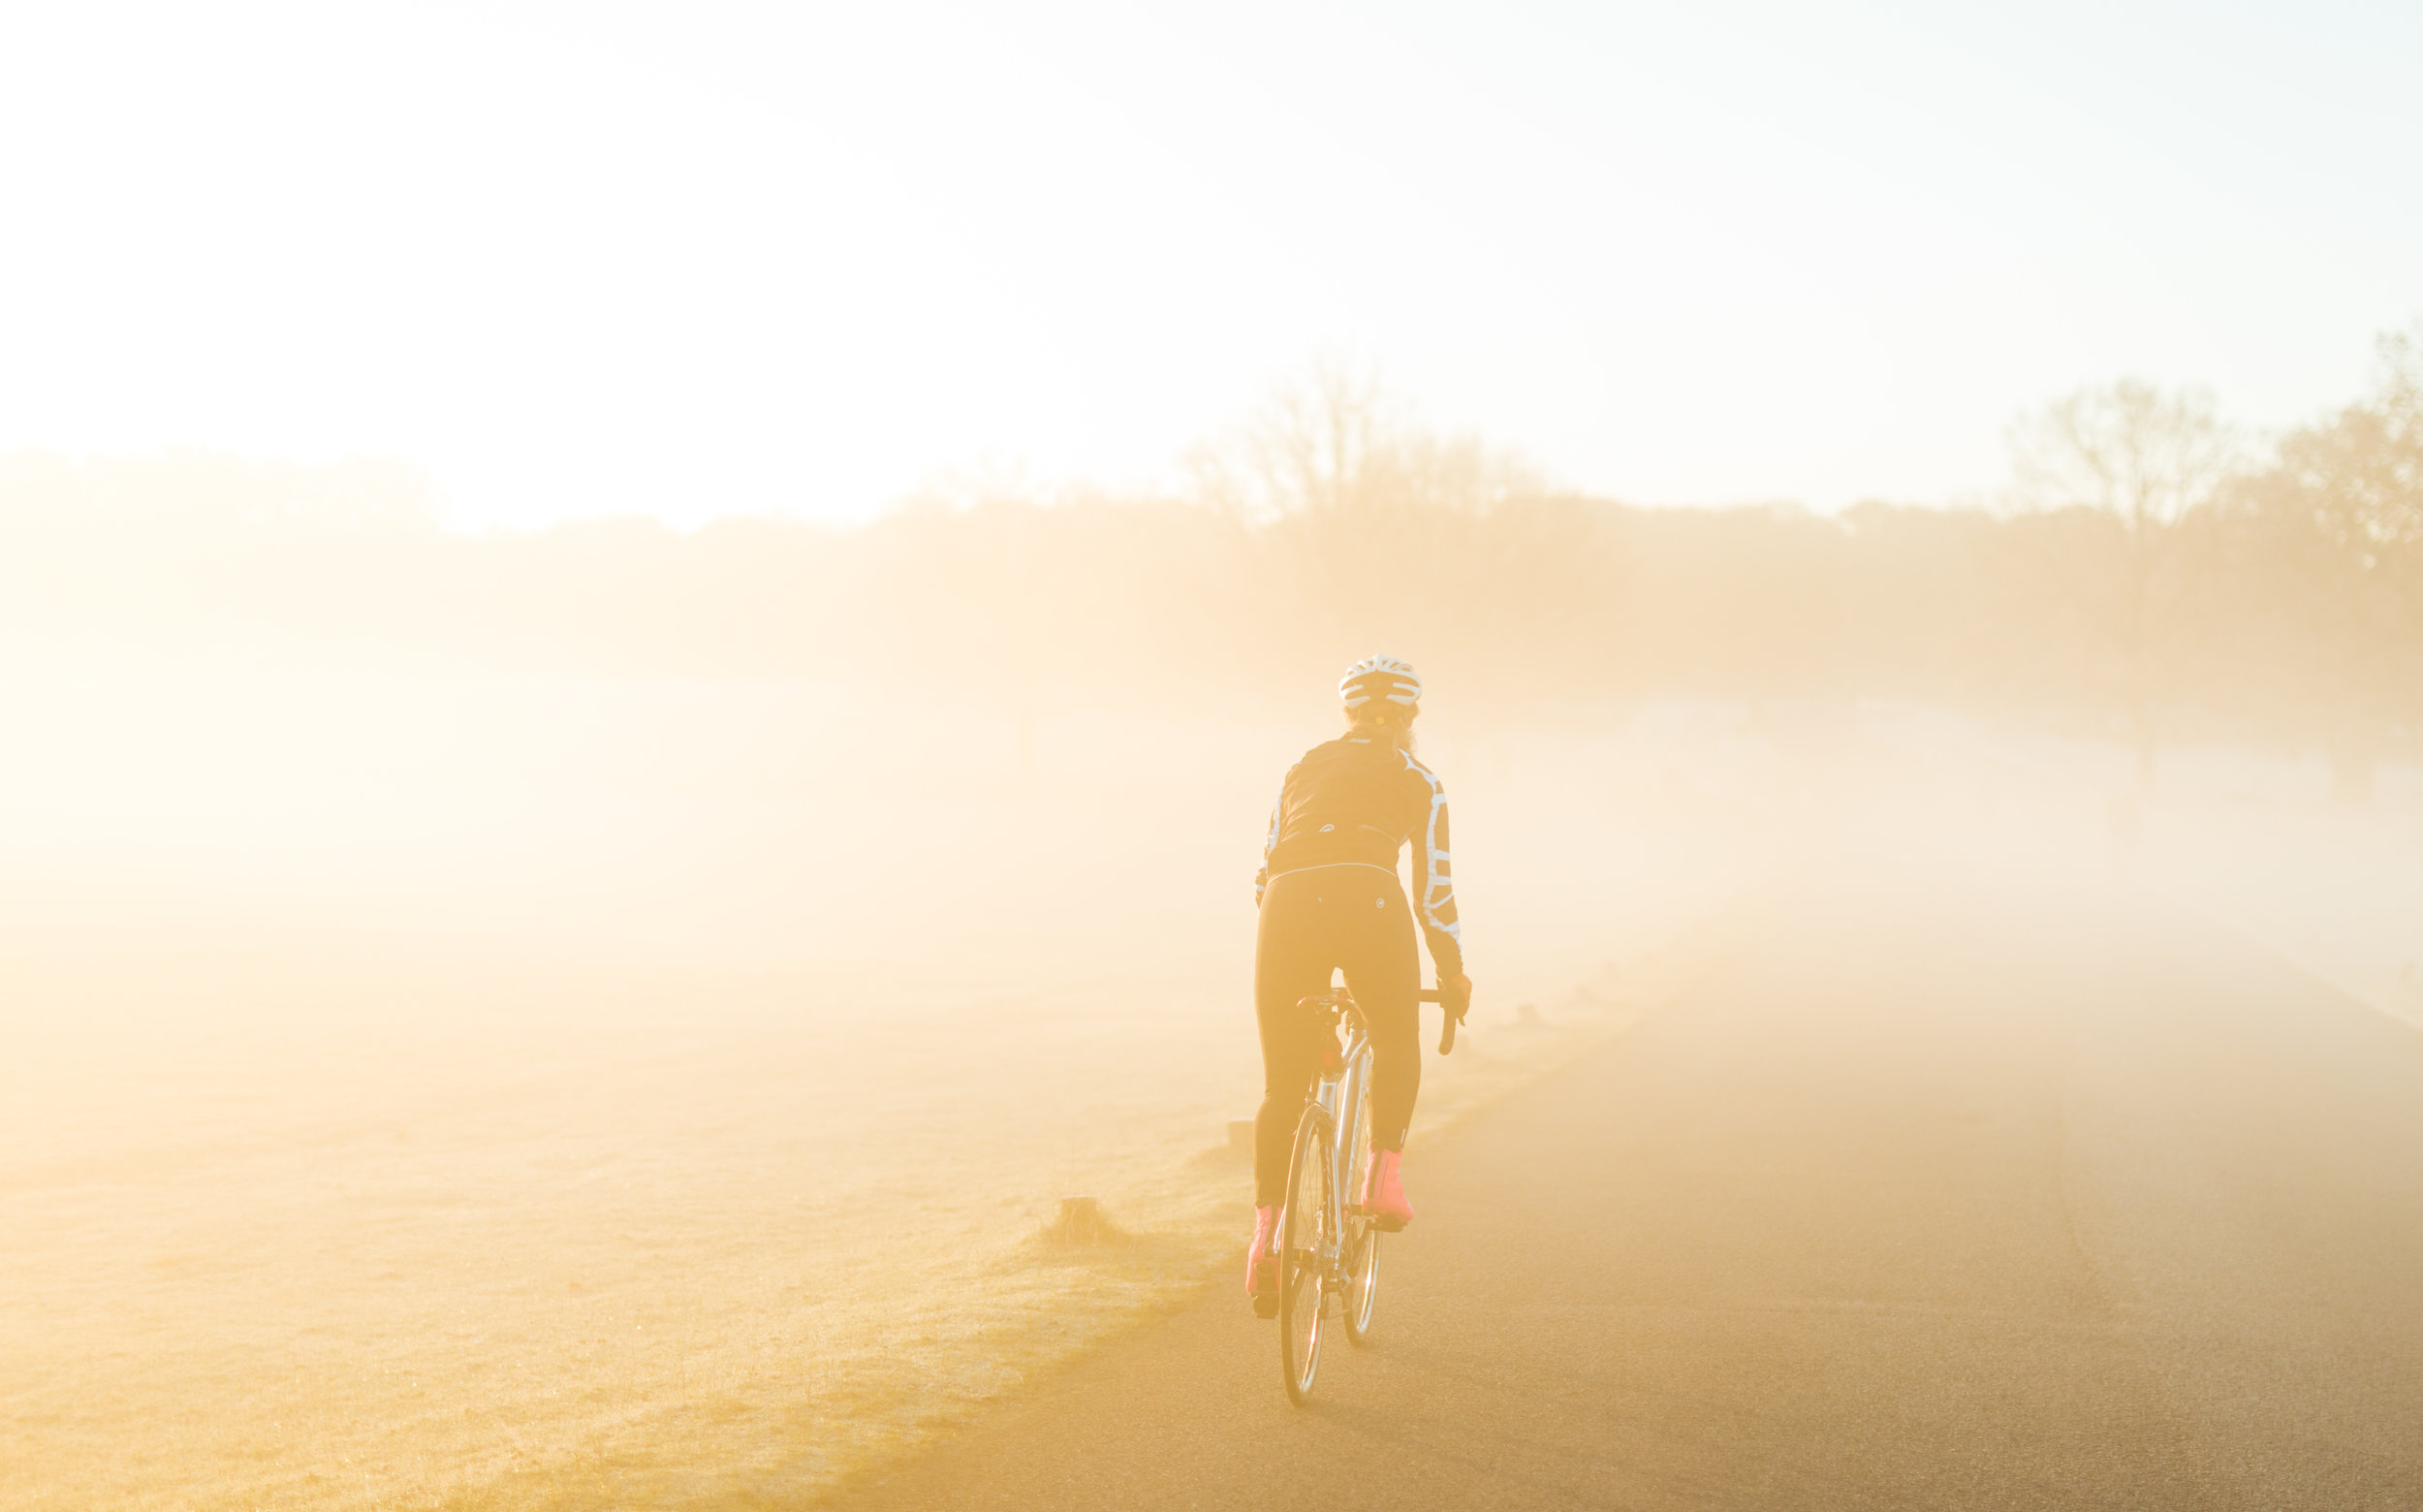 Sunrise cycle, january motivation, sophie radcliffe